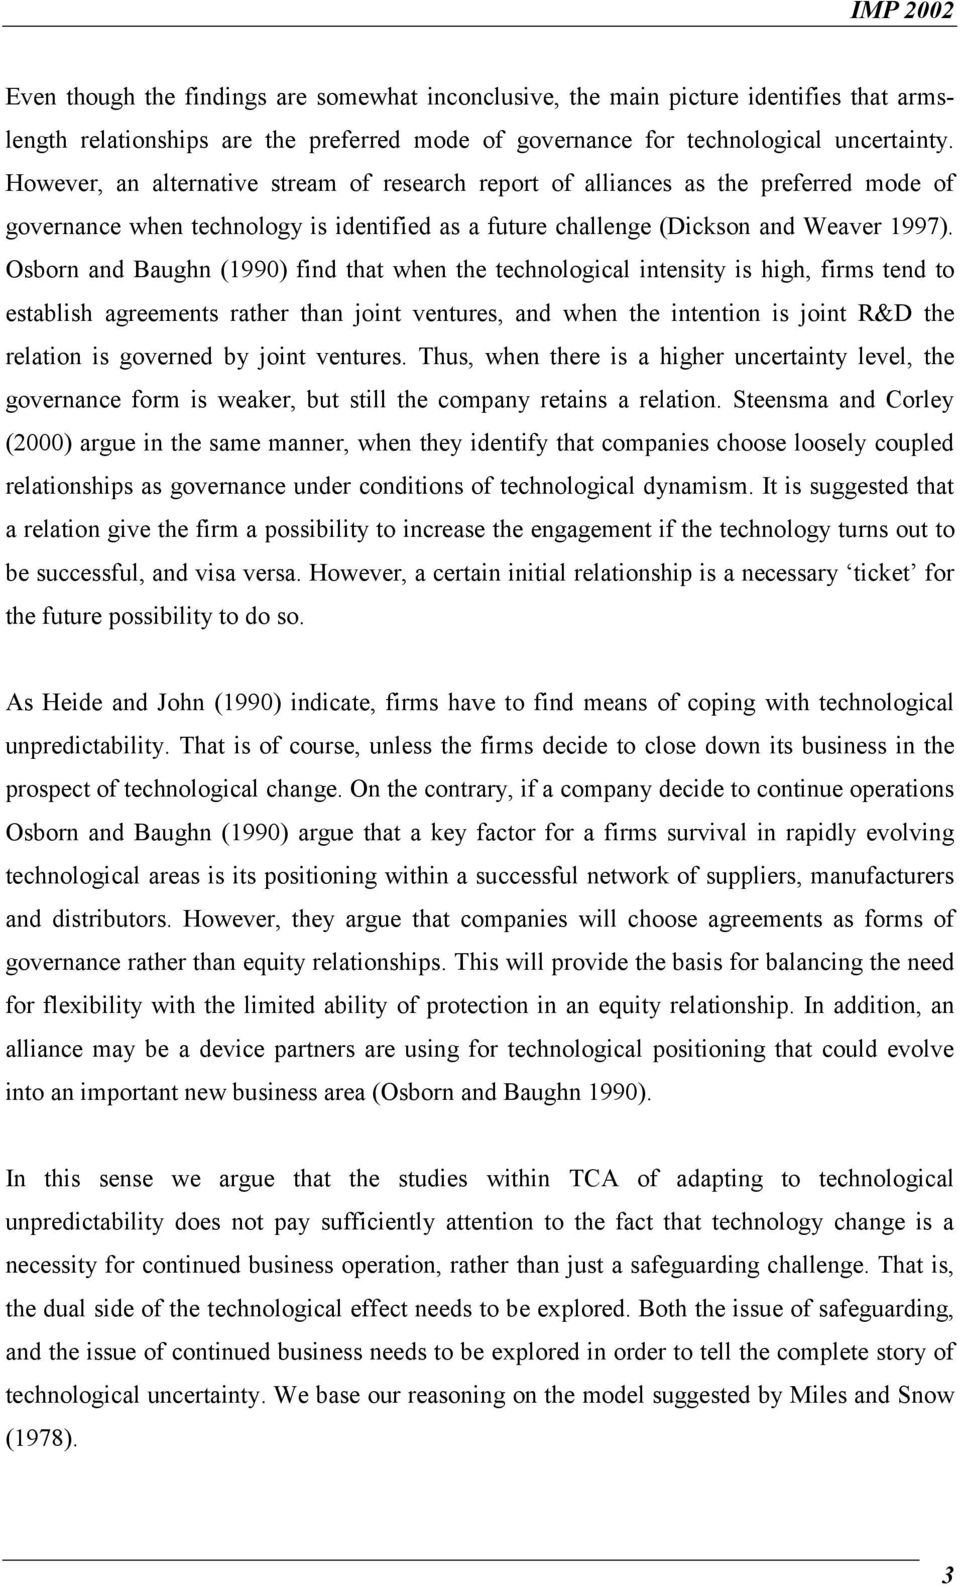 Osborn and Baughn (1990) find that when the technological intensity is high, firms tend to establish agreements rather than joint ventures, and when the intention is joint R&D the relation is